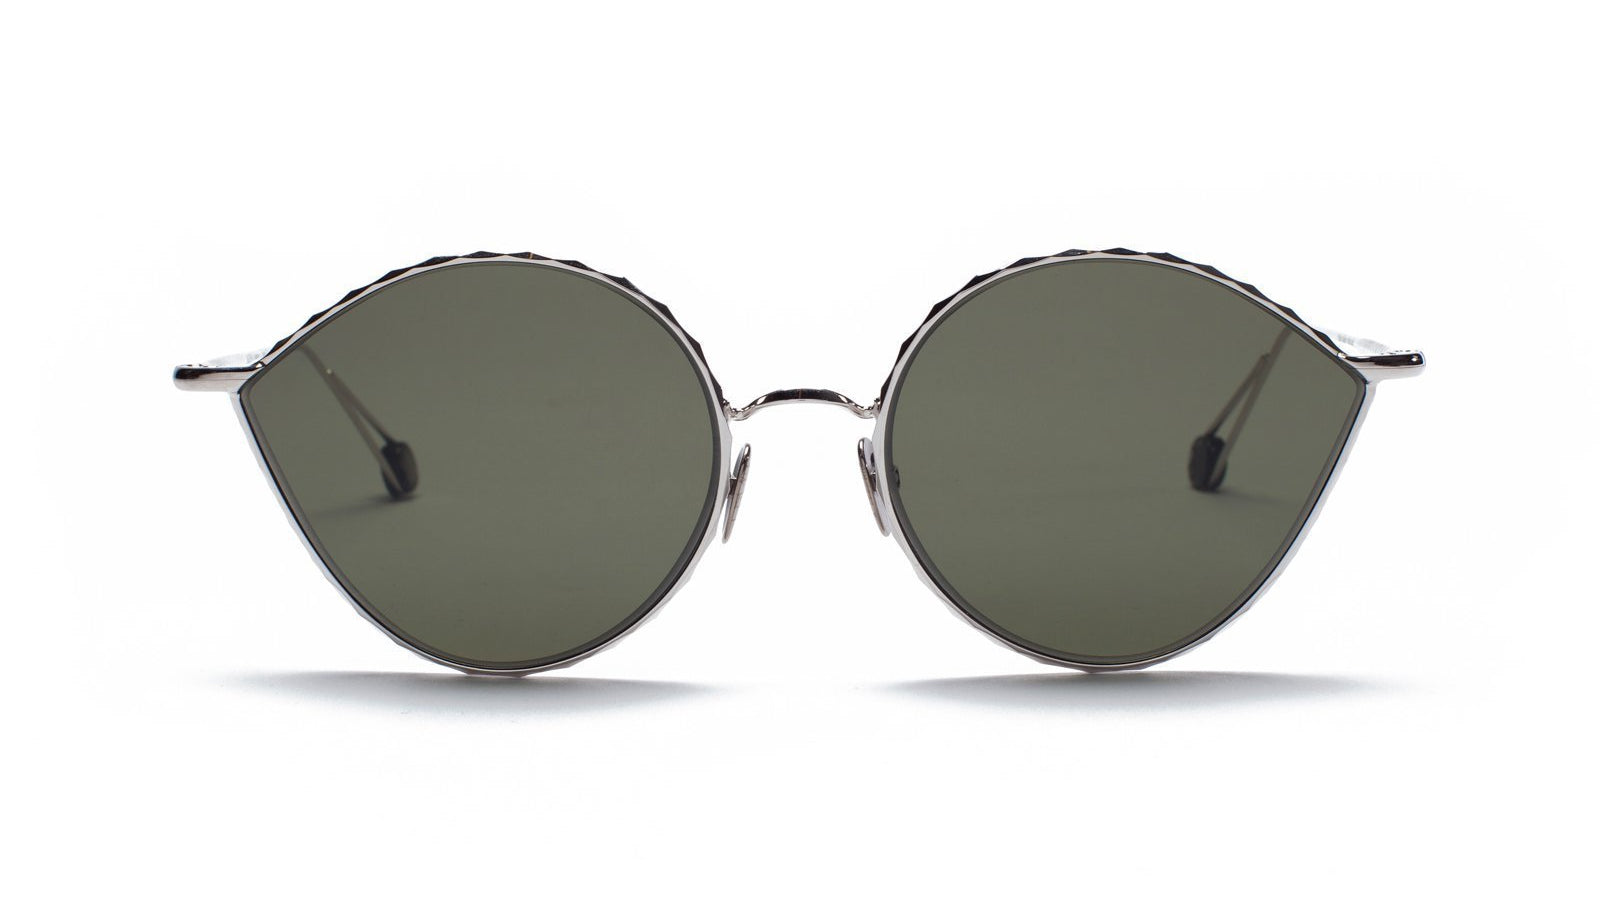 Ahlem Place Vauban Sunglasses White Gold